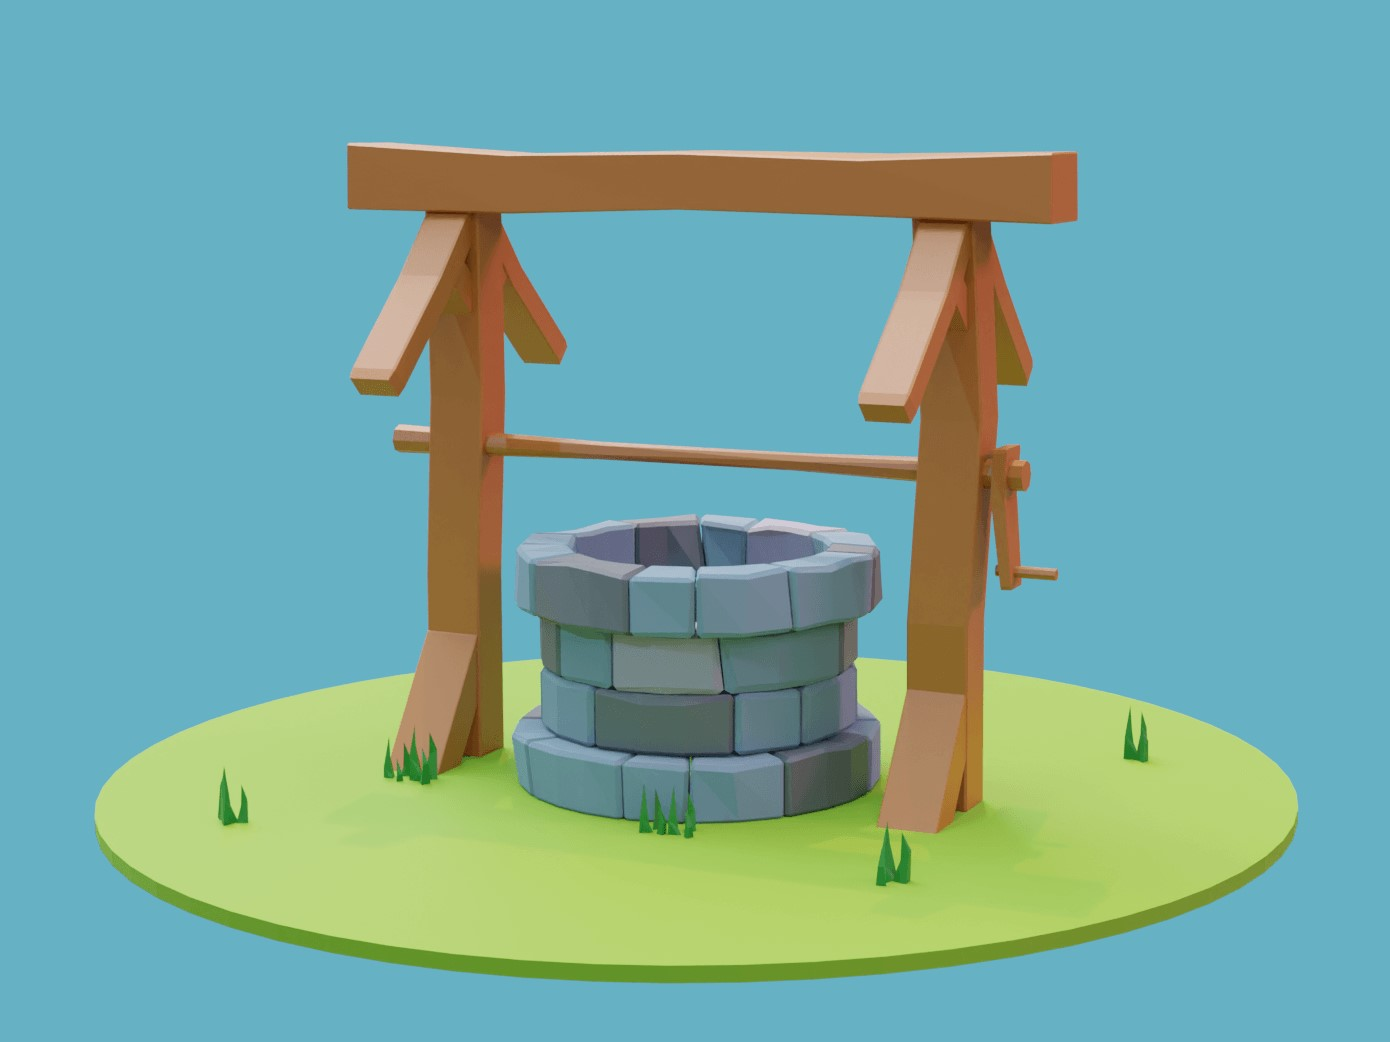 A well with a wooden frame